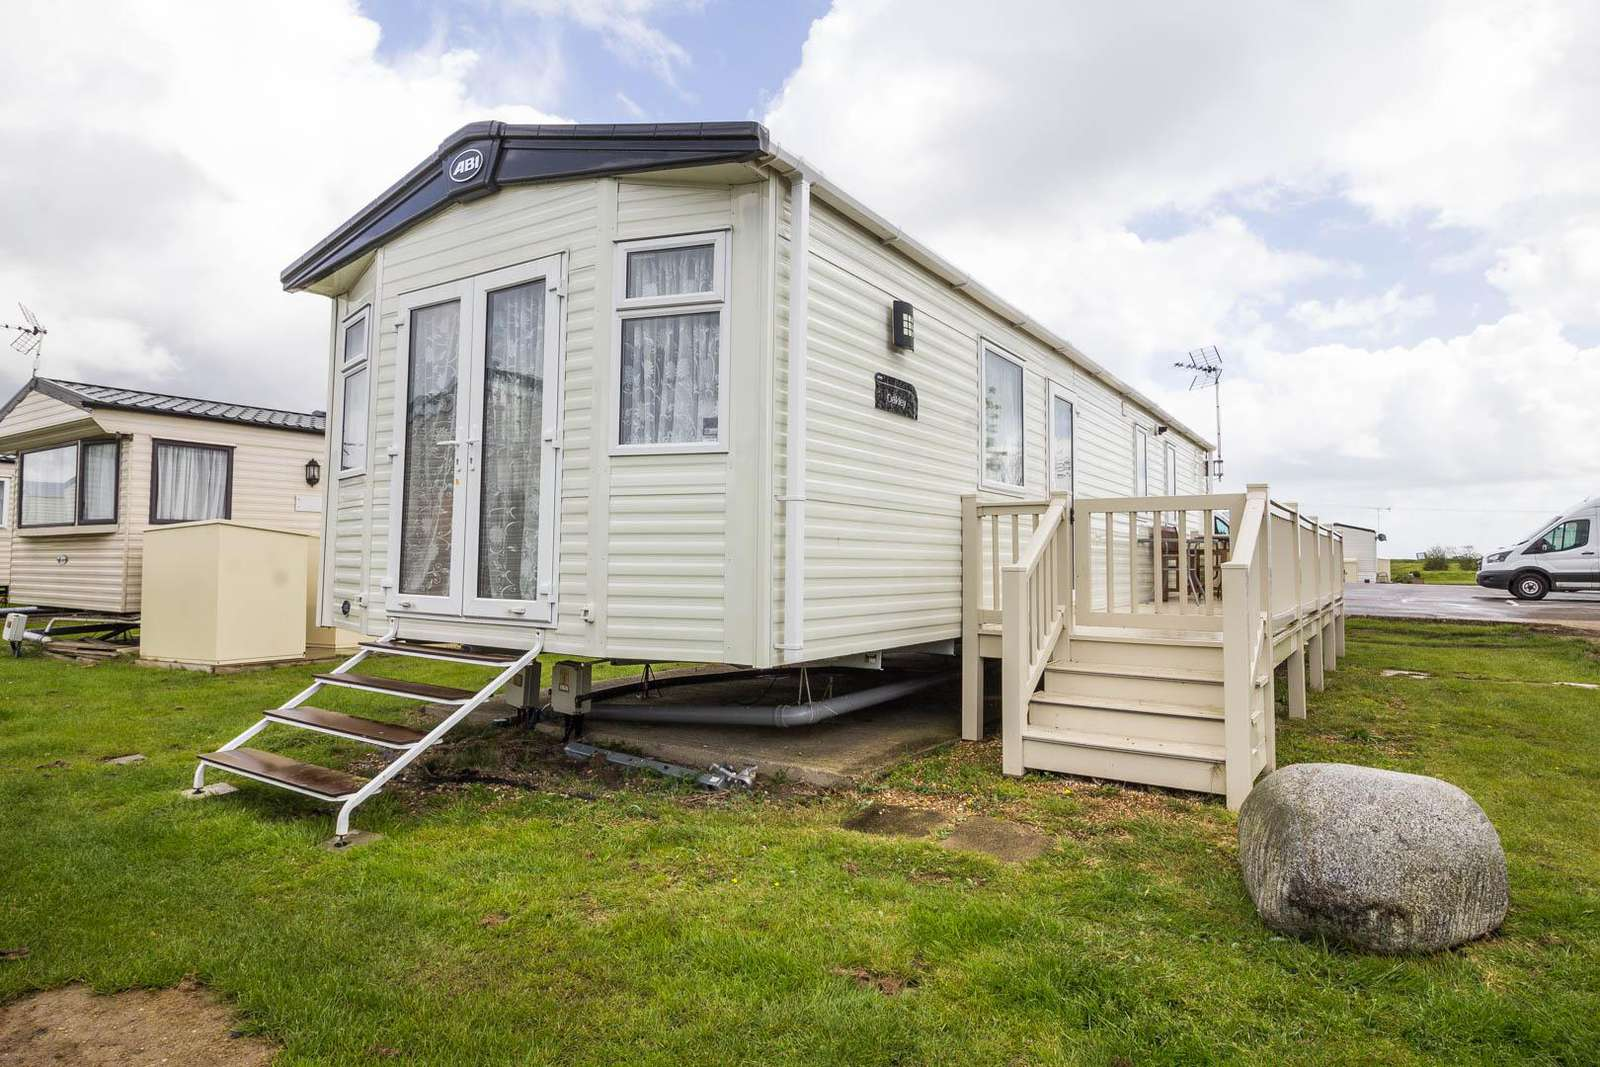 28051FV – Field View area, 3 bed, 8 berth caravan with decking. Diamond rated. - property